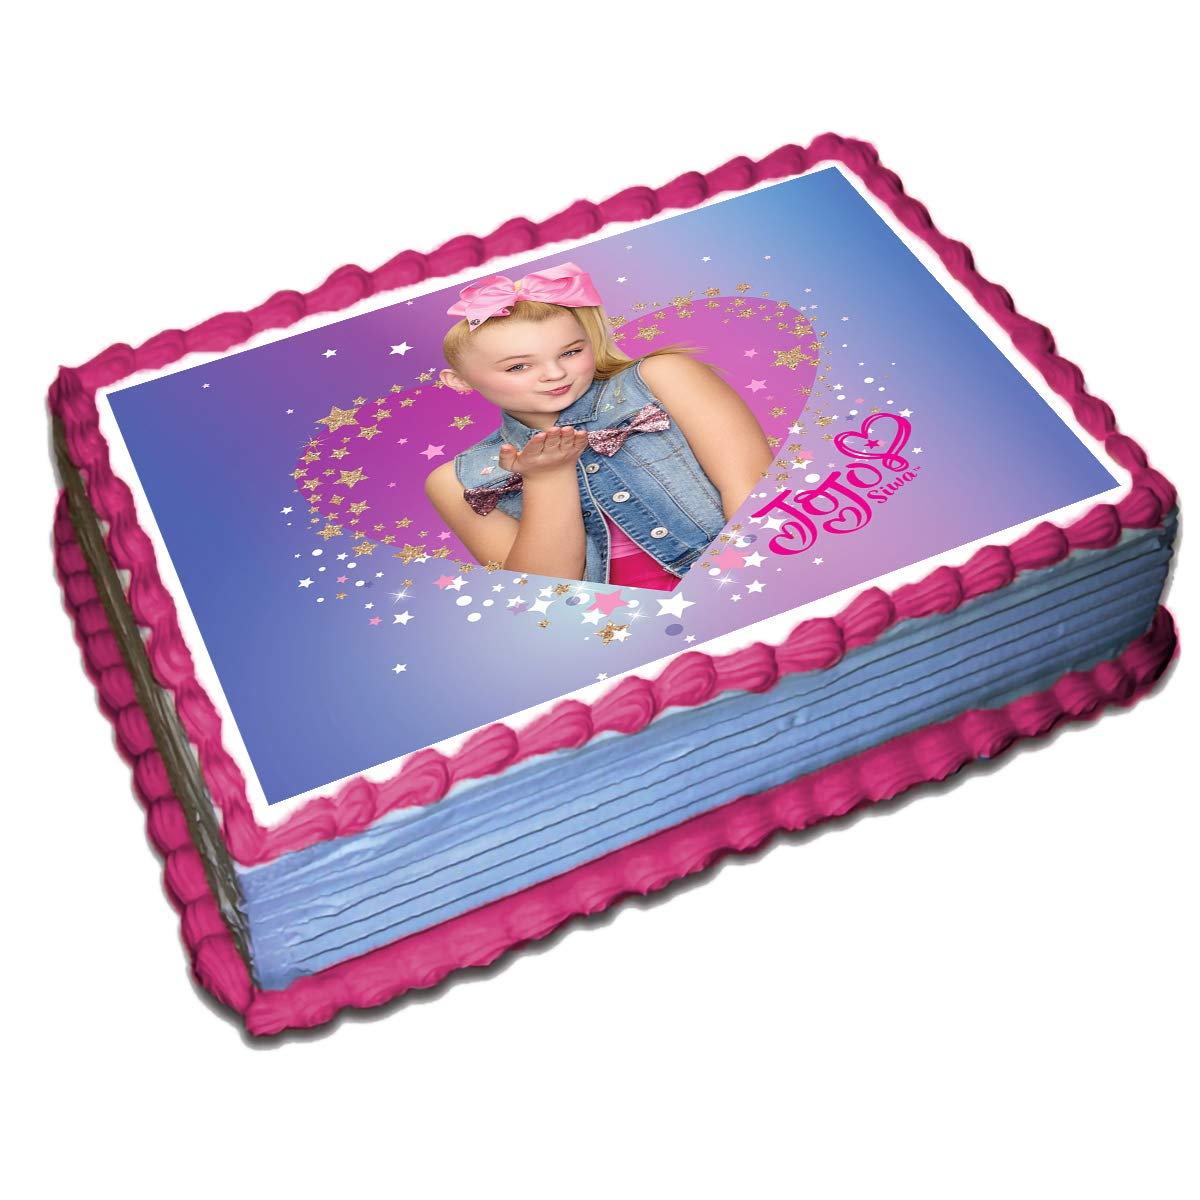 Jojo Siwa Cake Toppers Icing Sugar Paper 1/4 8.5 x 11.5 Inches Sheet Edible Frosting Photo Birthday Cake Topper Fondant Transfer (Best Quality Printing)